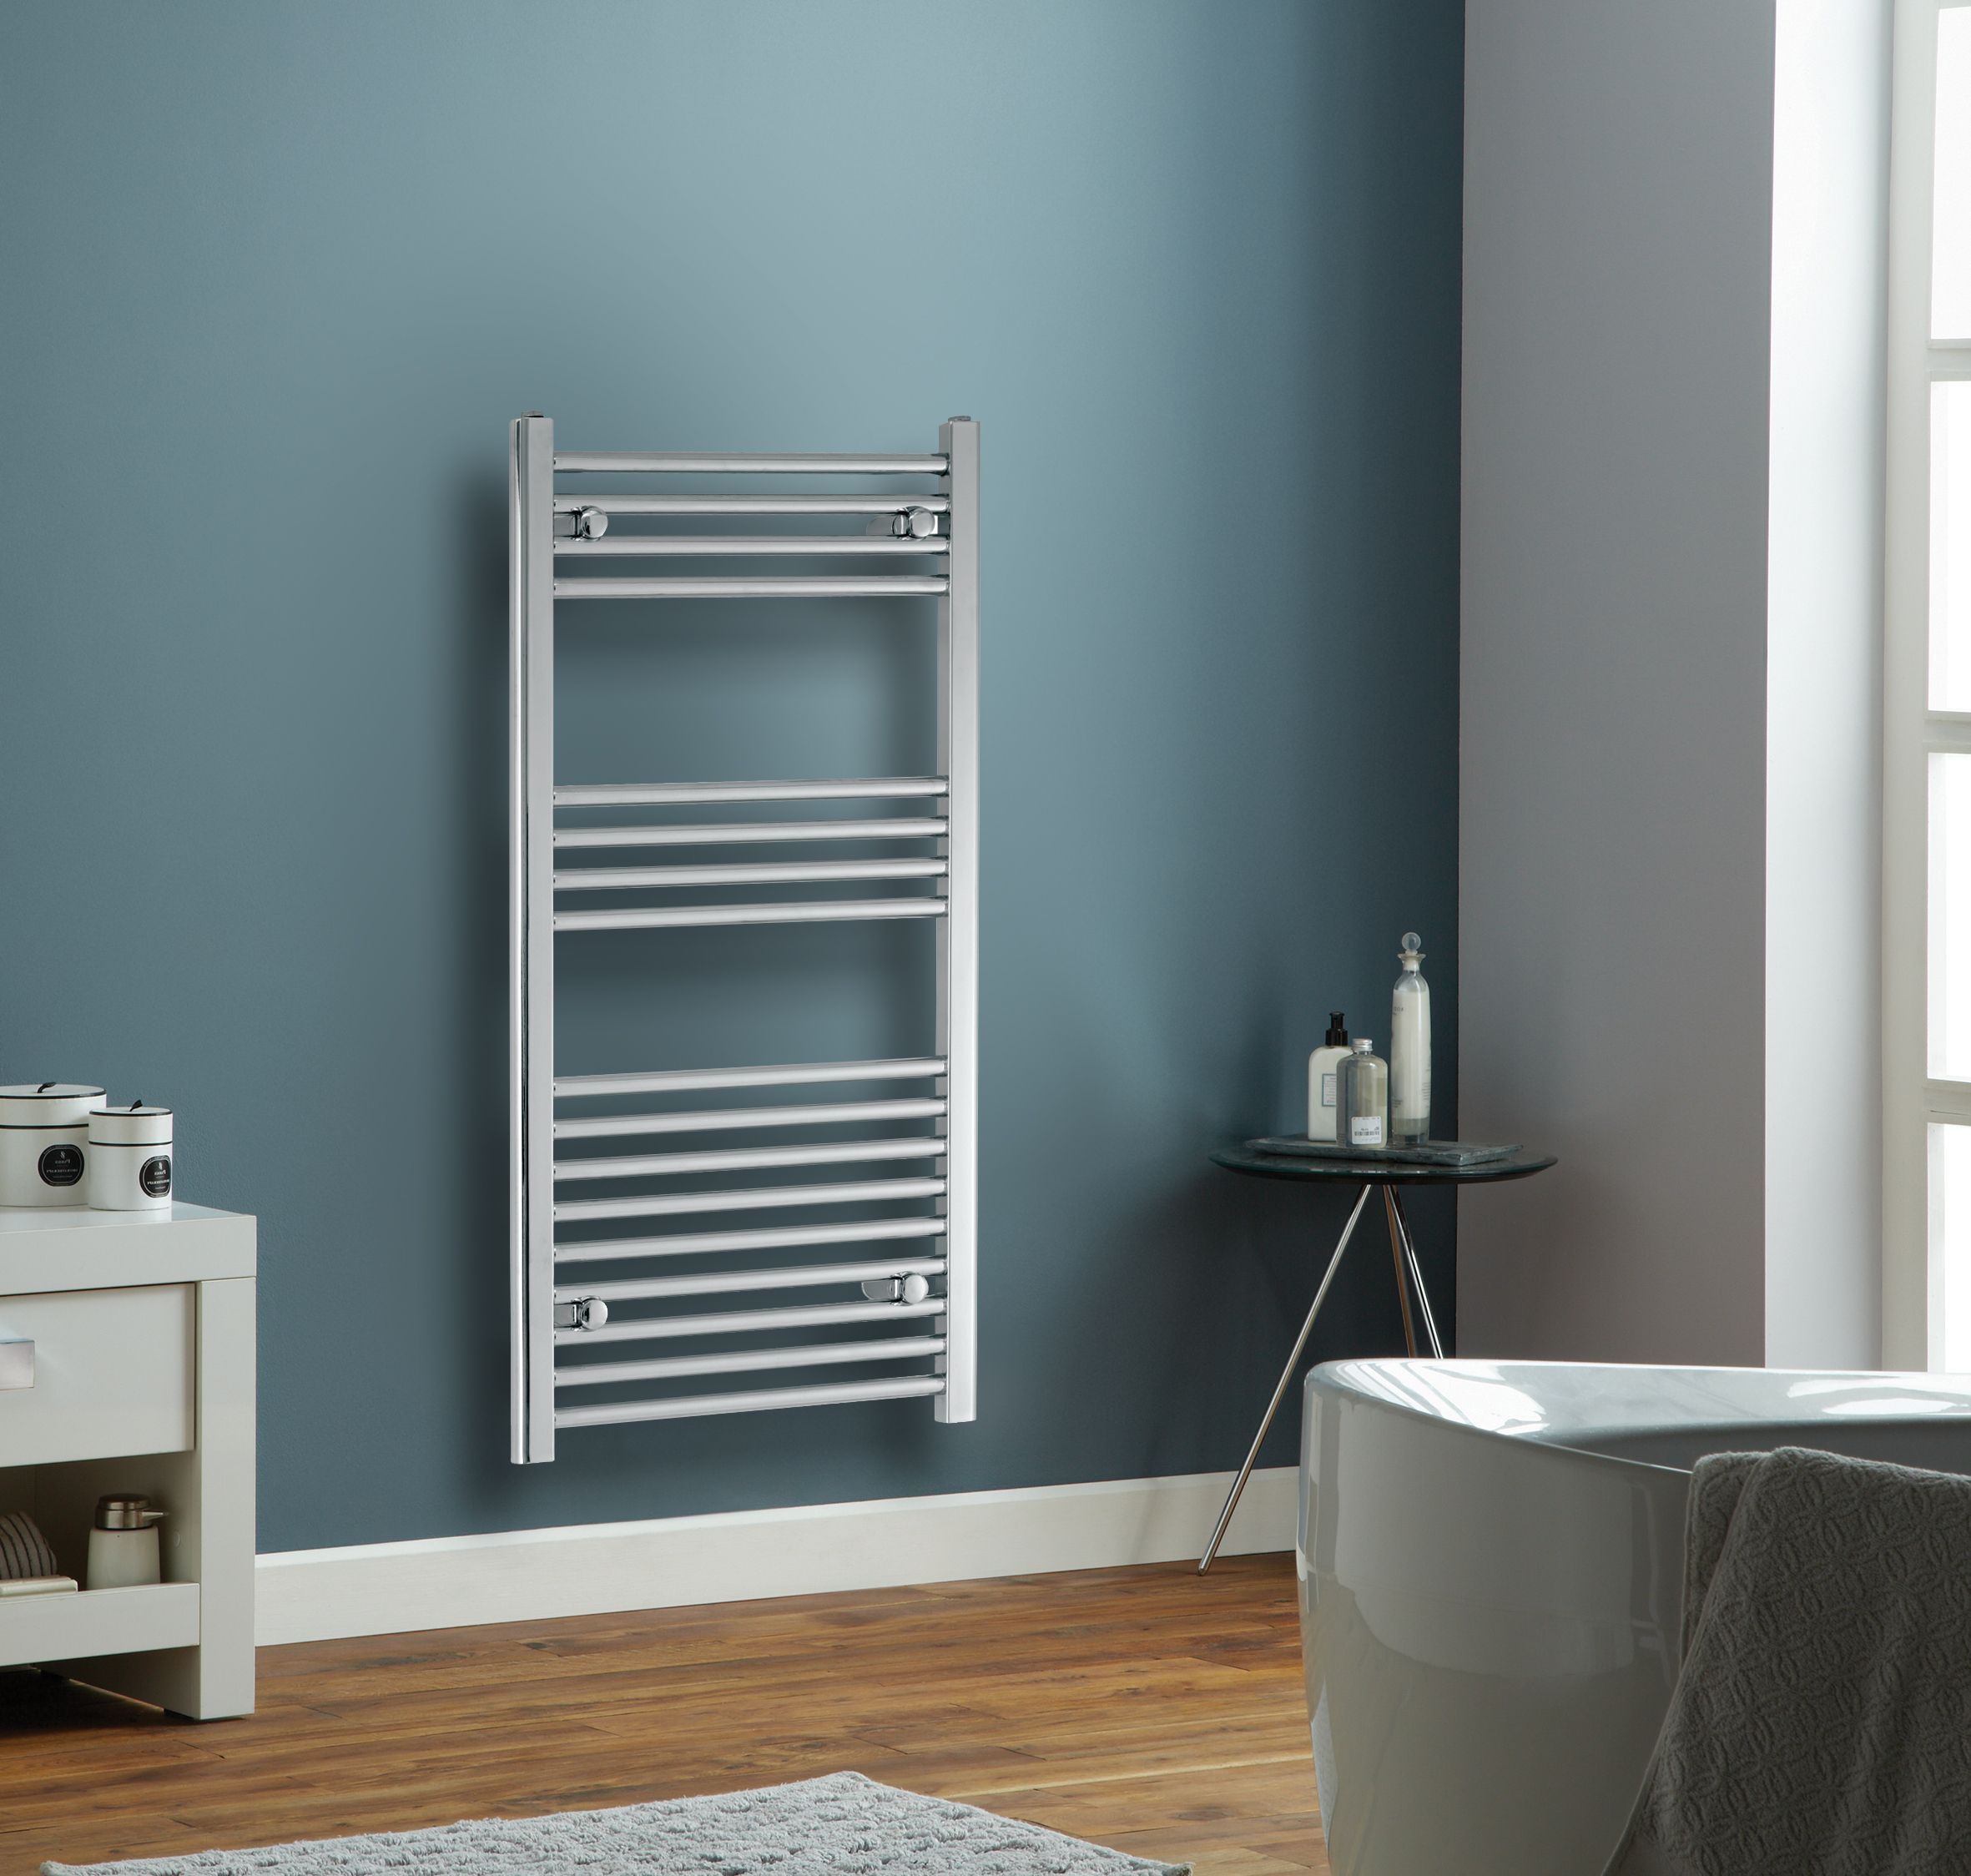 How To Adjust The Temperature On Heated Towel Rails